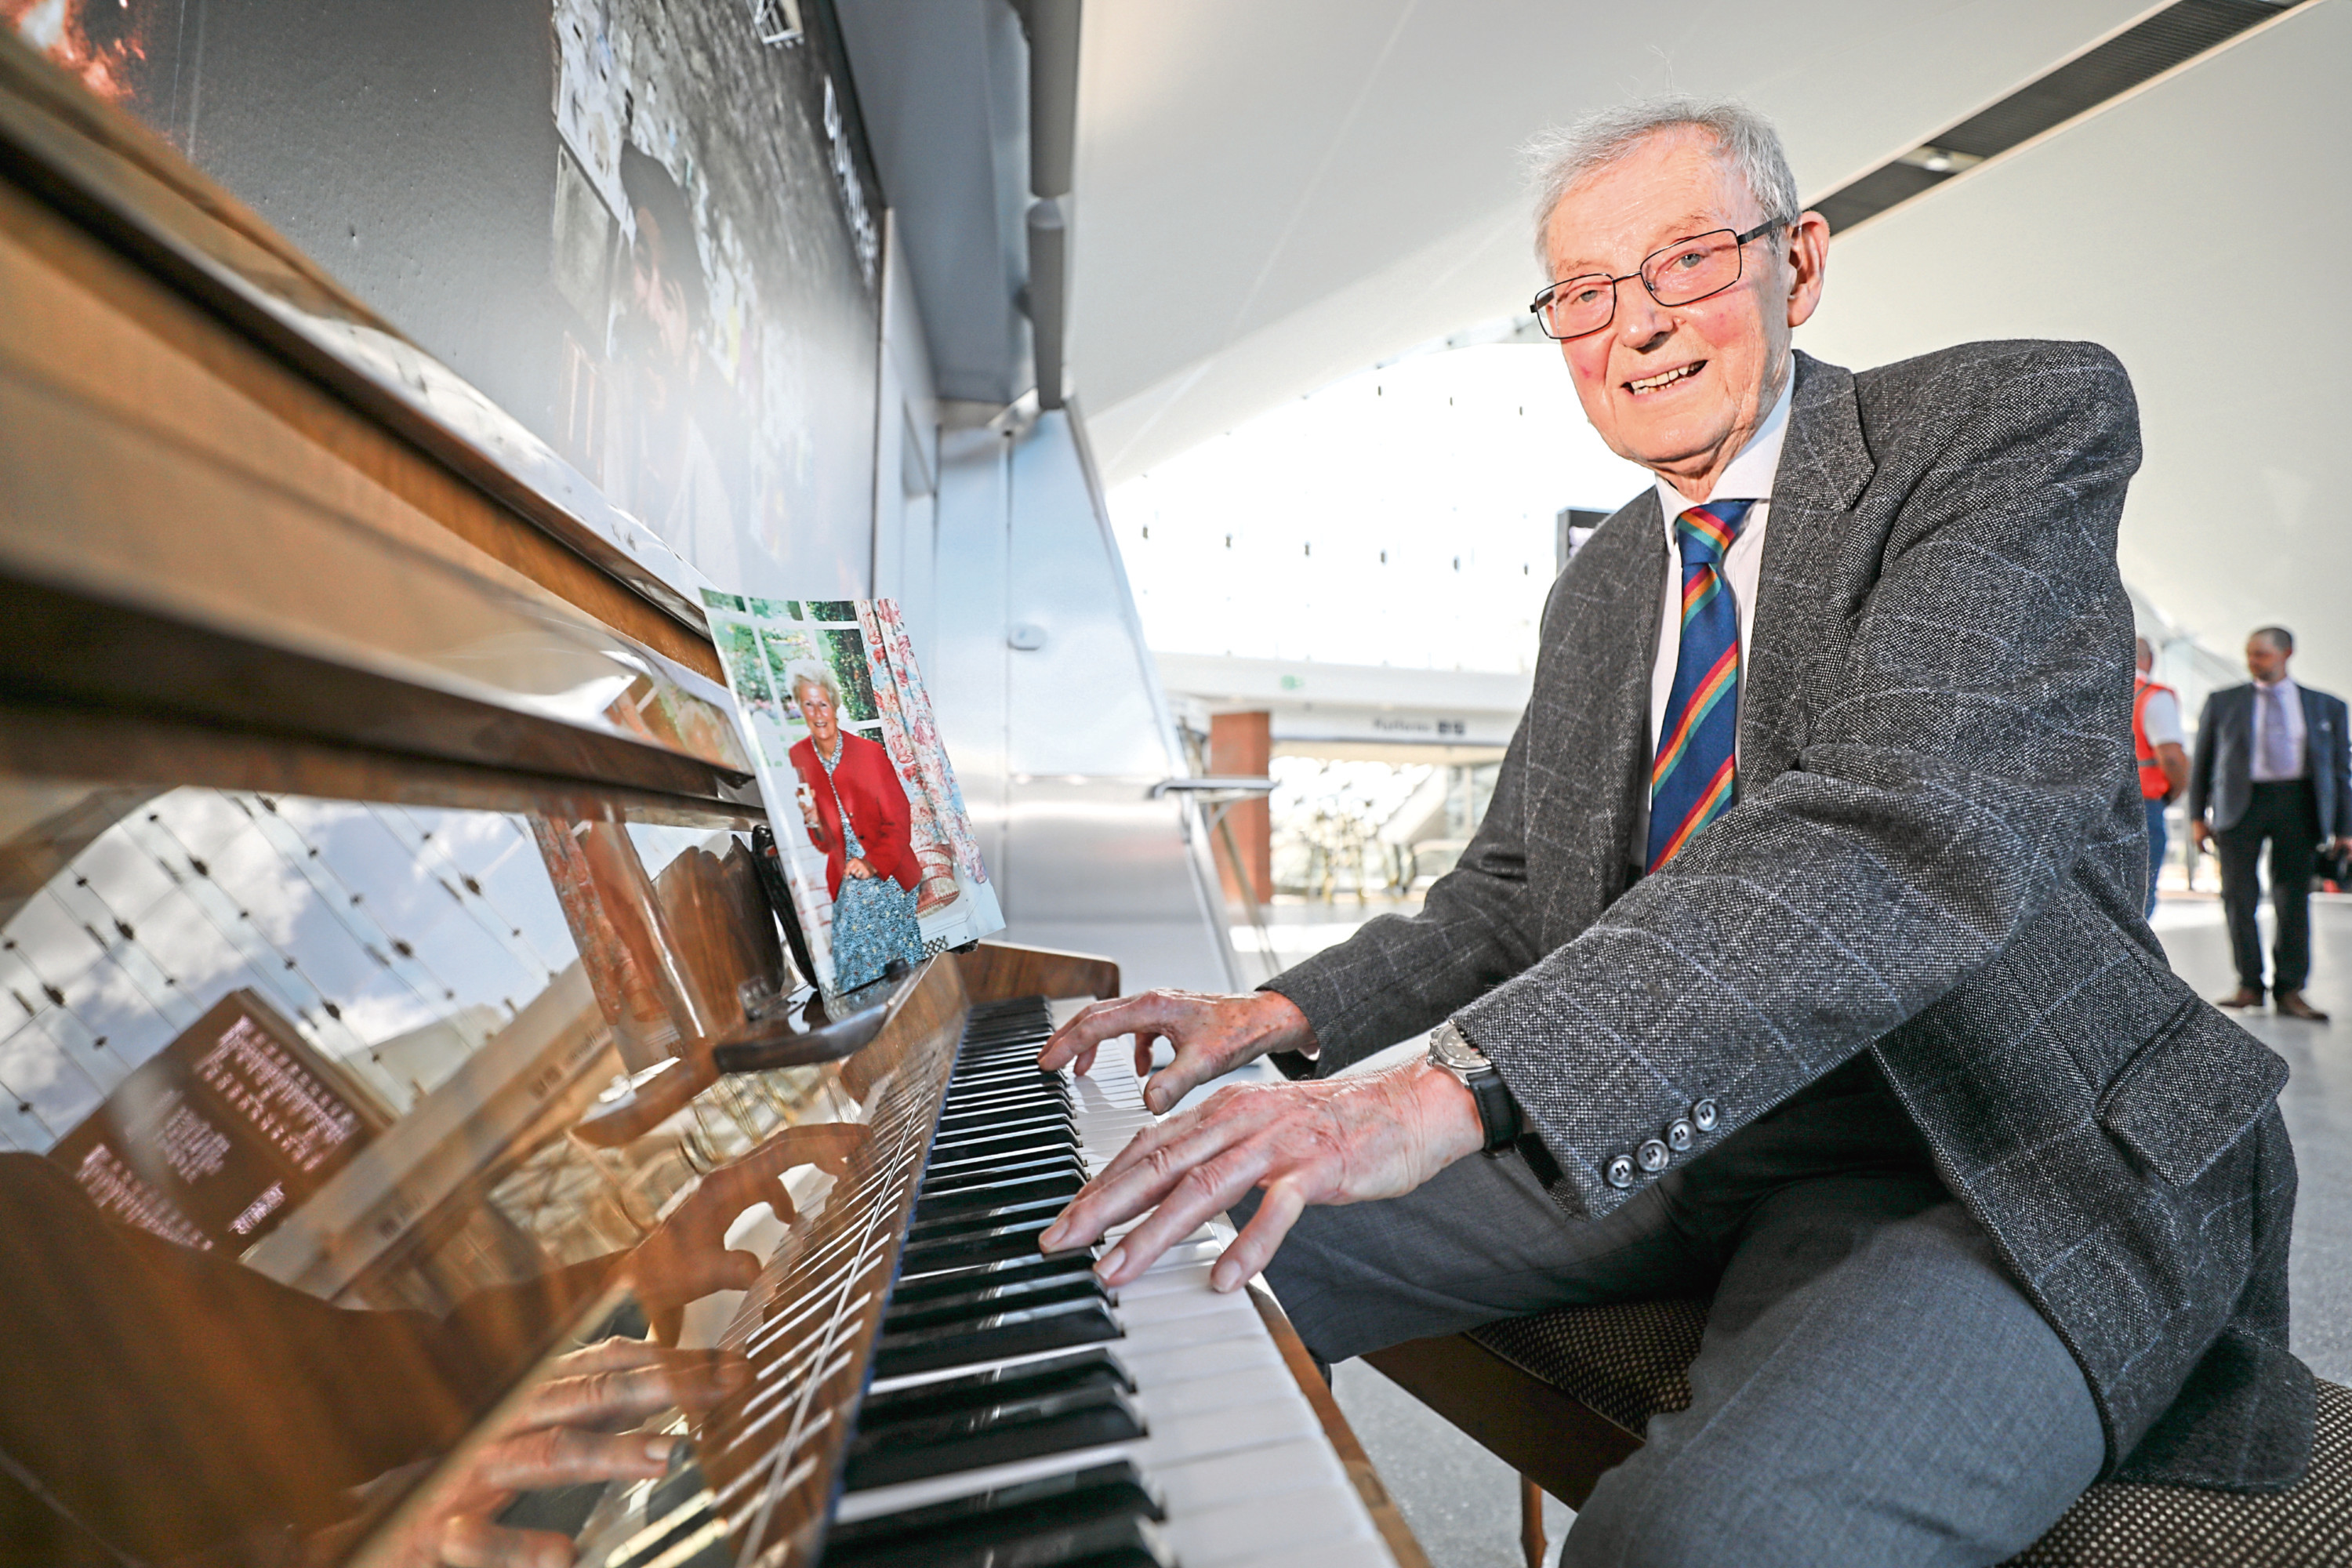 Courier News, Scott Milne story, CR0002422 Dave Patterson has donated a piano to Dundee Railway station in memory of his wife Jean Patterson who worked fro ScotRail for 10 years. PIc shows; Dave Patterson at the piano with a photo of his wife Jean. Sunday, 8th July, 2018.